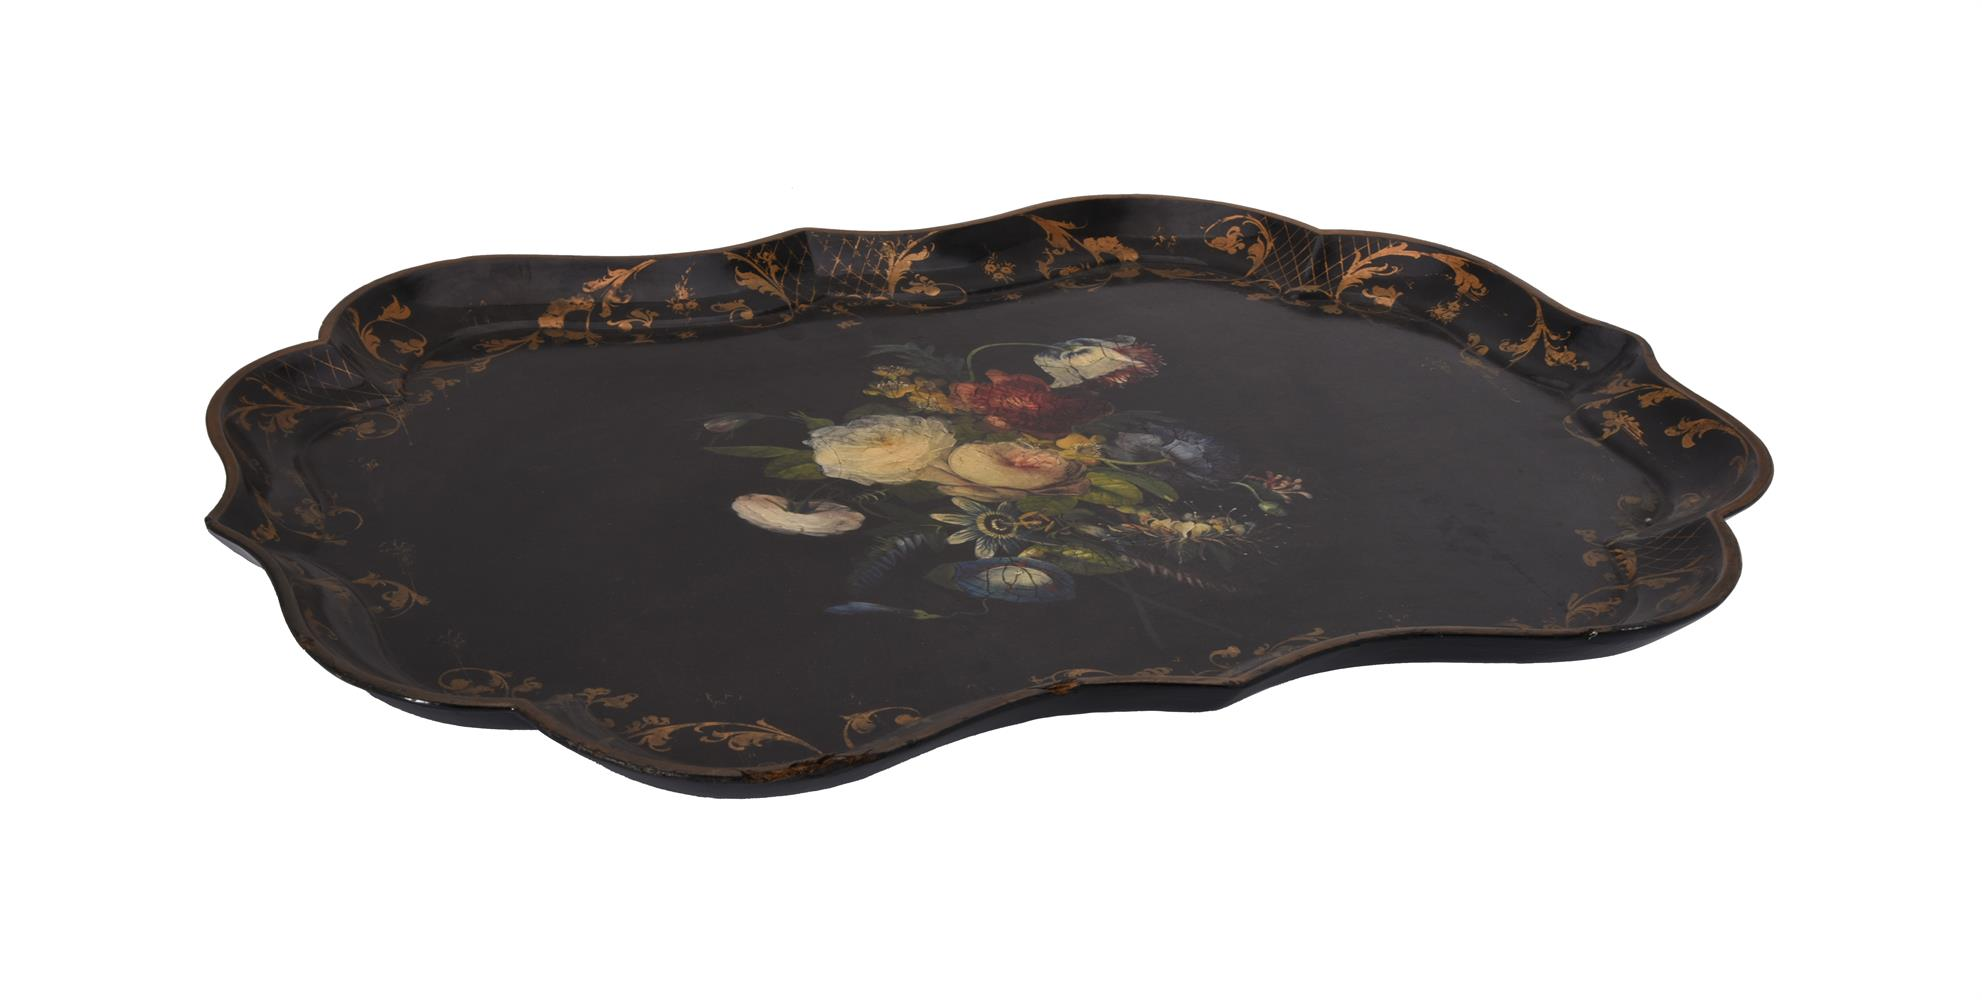 A Victorian black lacquered and painted papier mache tray - Image 2 of 2